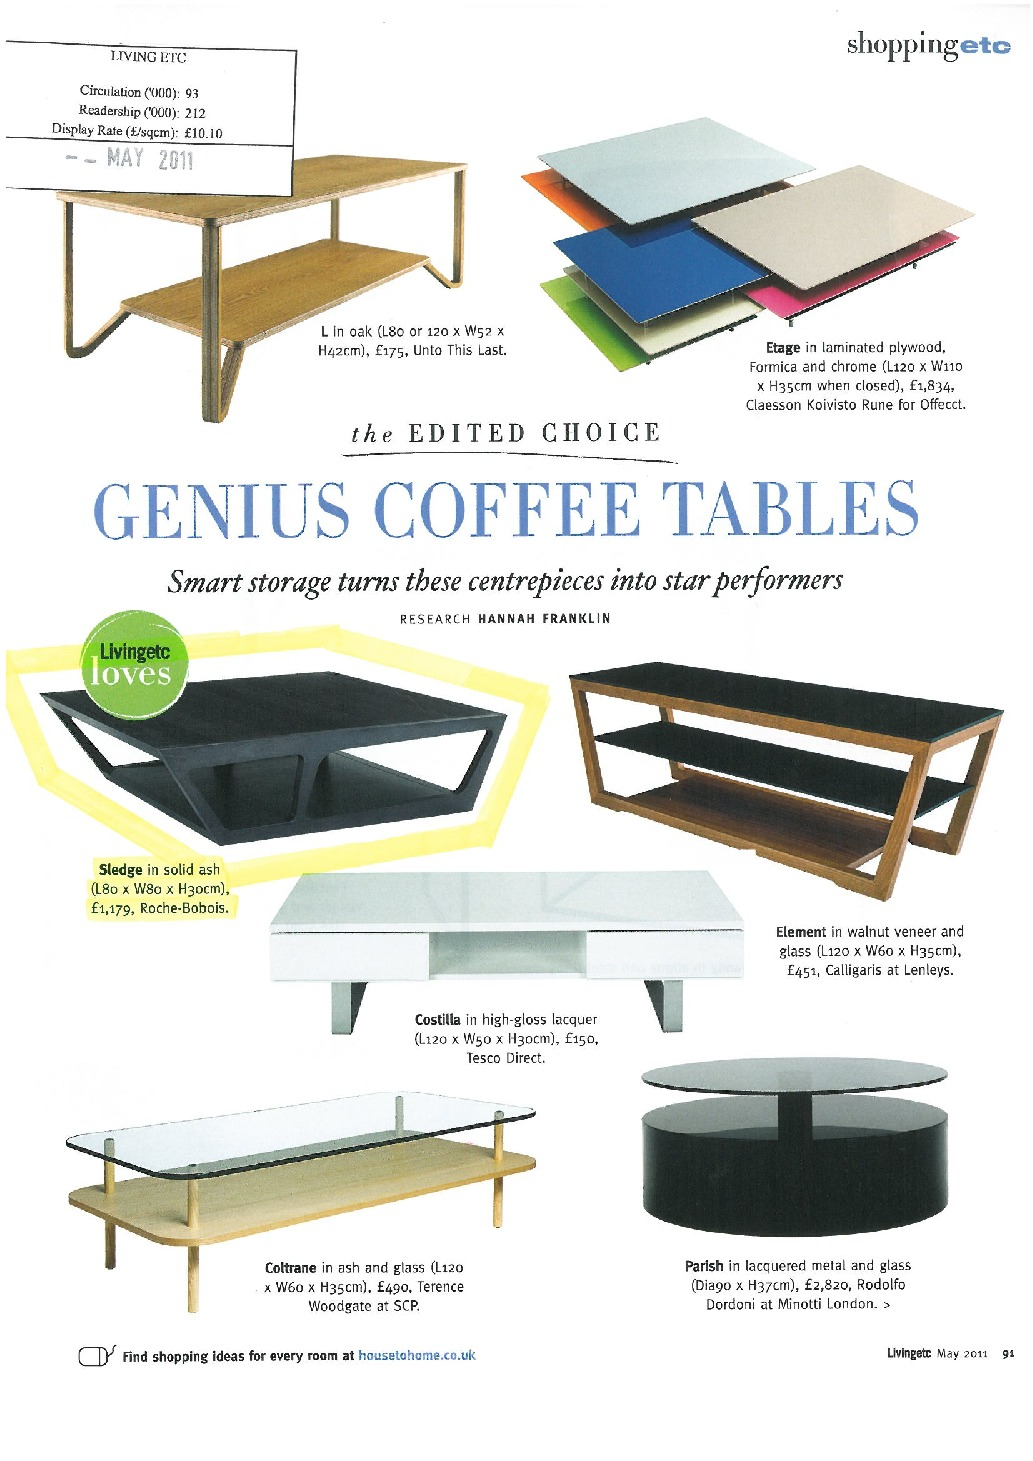 living_ect-_genius_coffee_tables-_may2011